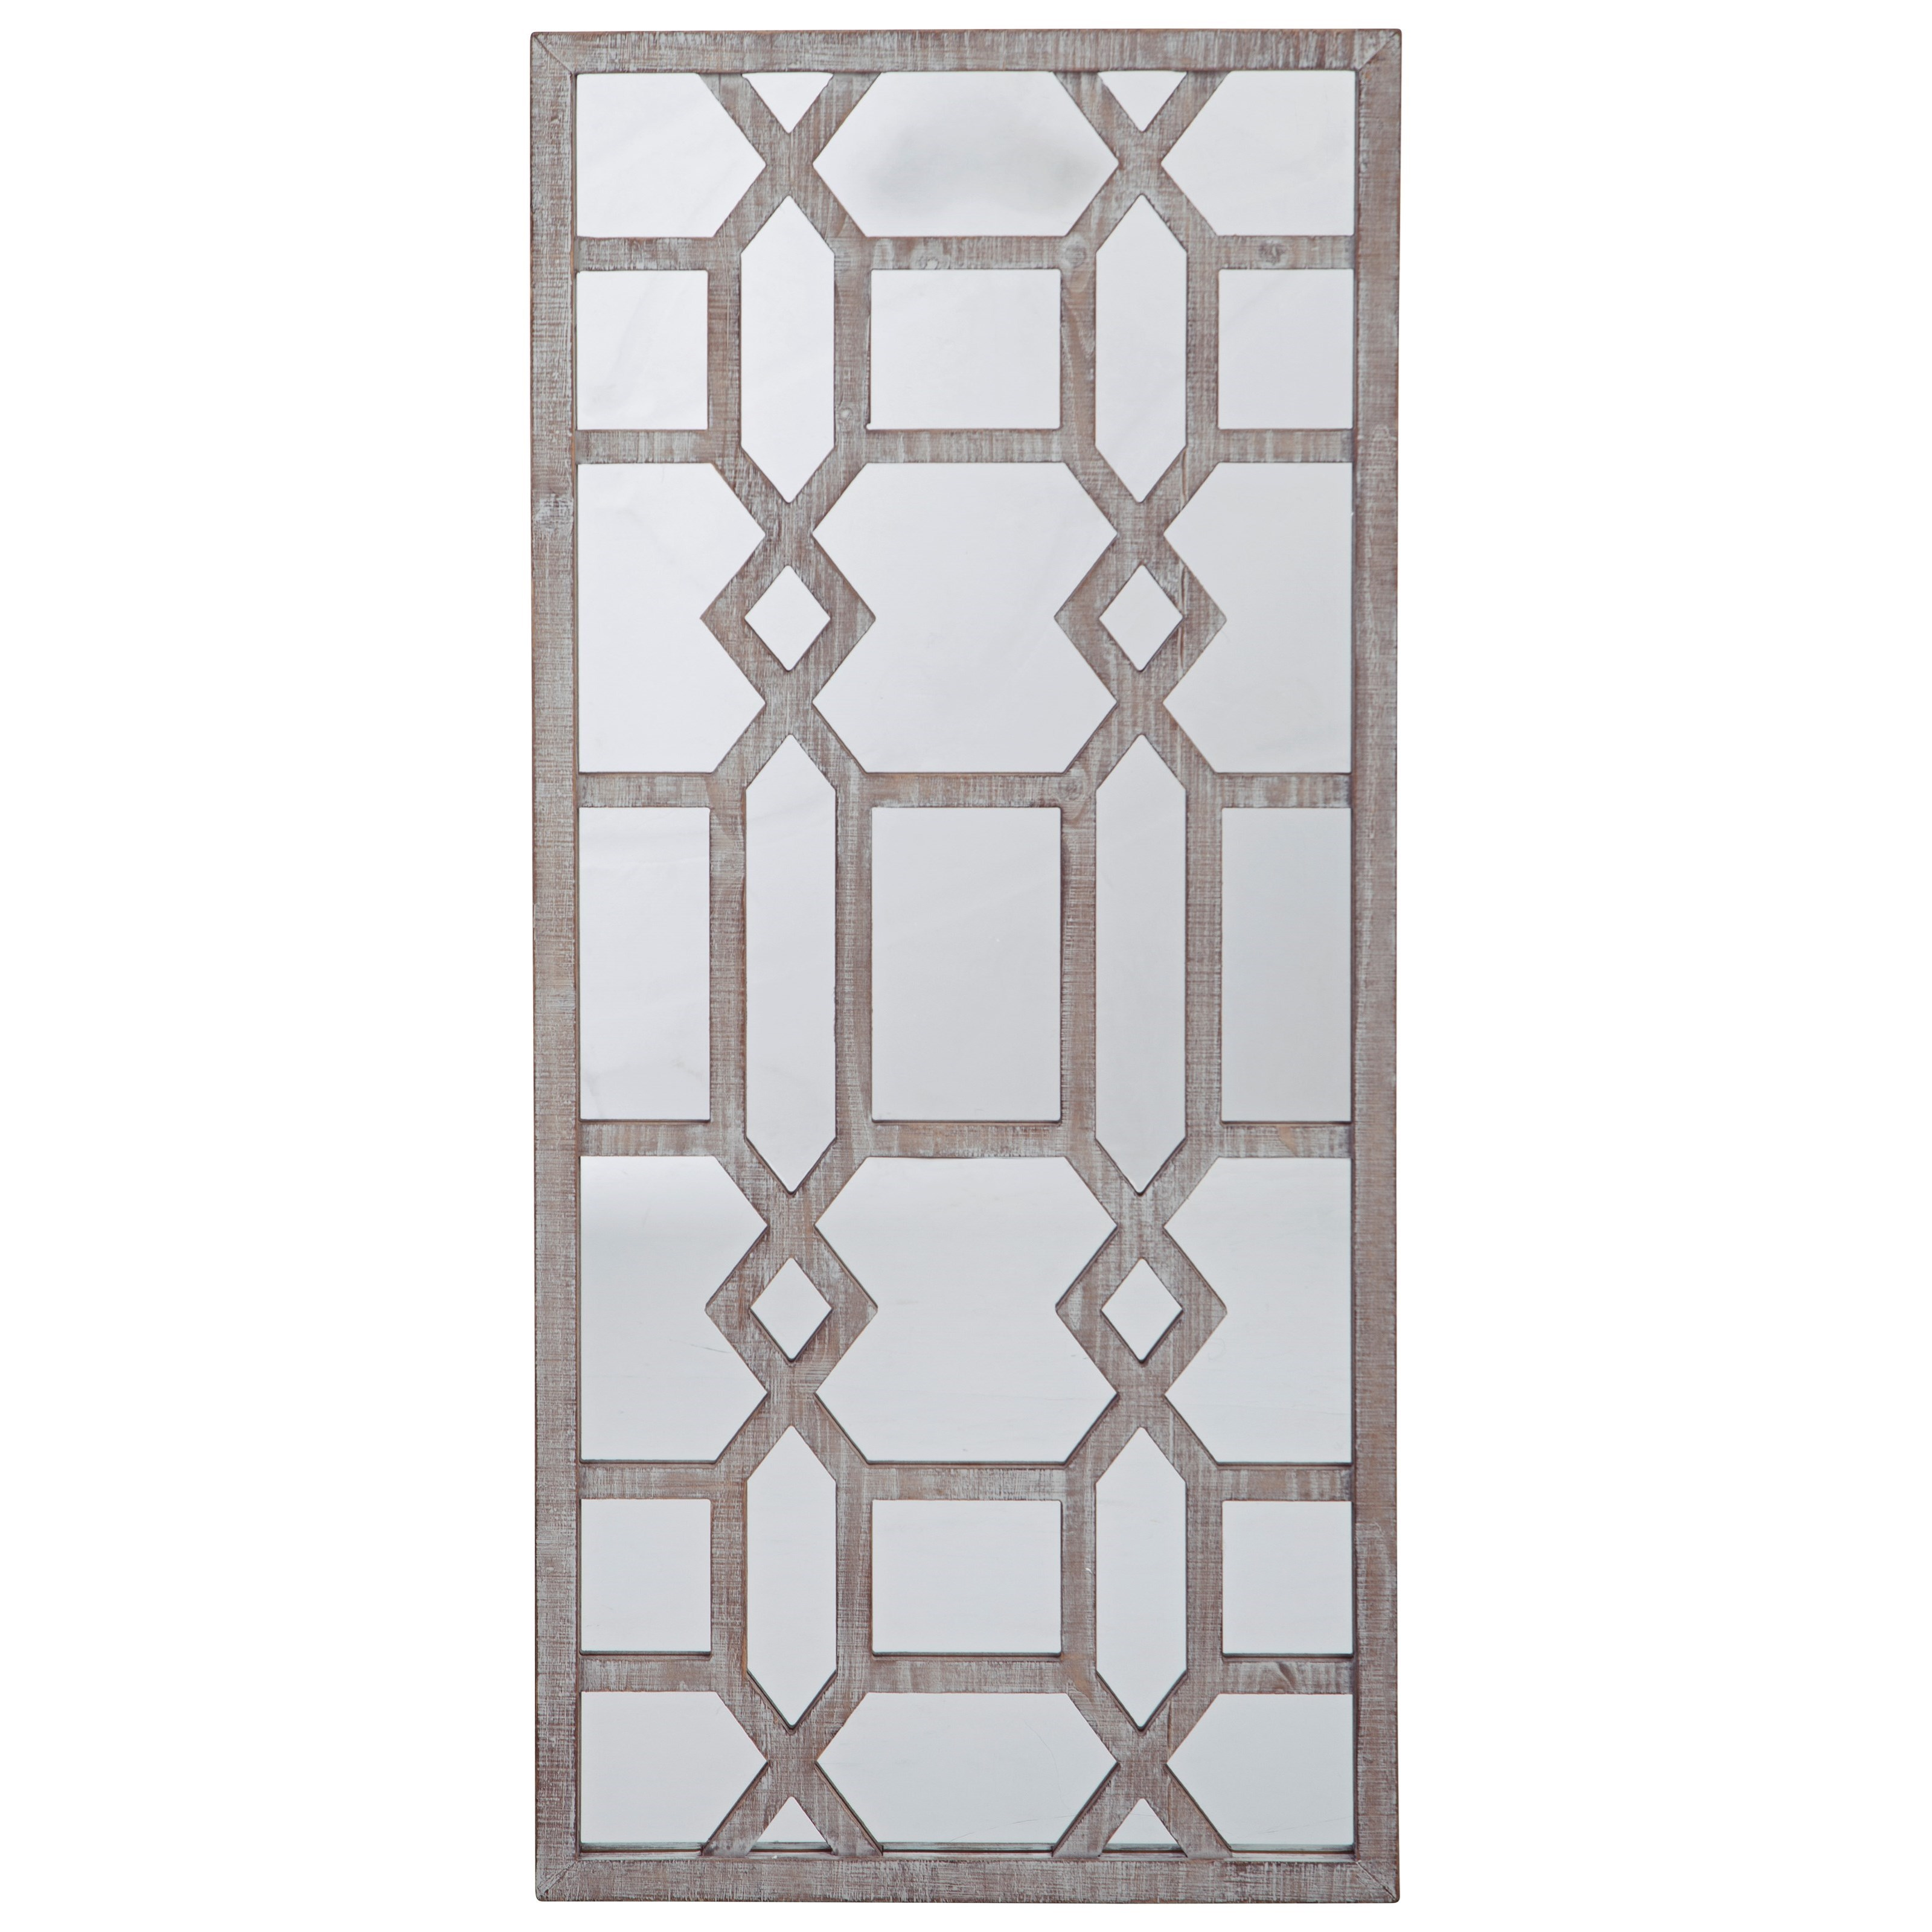 Accent Mirrors Leora Antique Gray Accent Mirror by Signature Design by Ashley at Pilgrim Furniture City